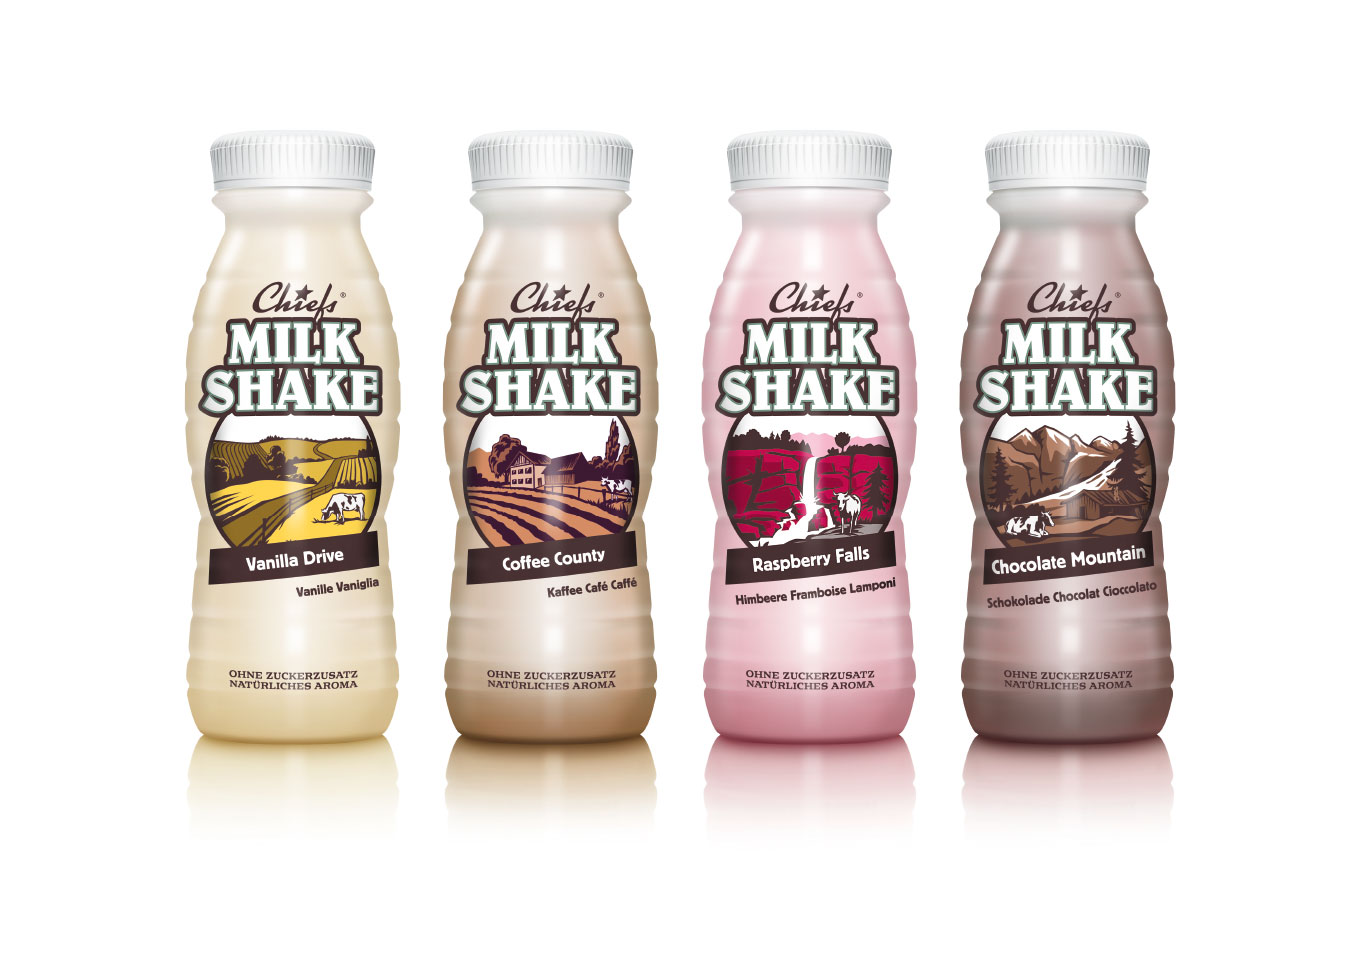 Chiefs Milkshakes Packaging